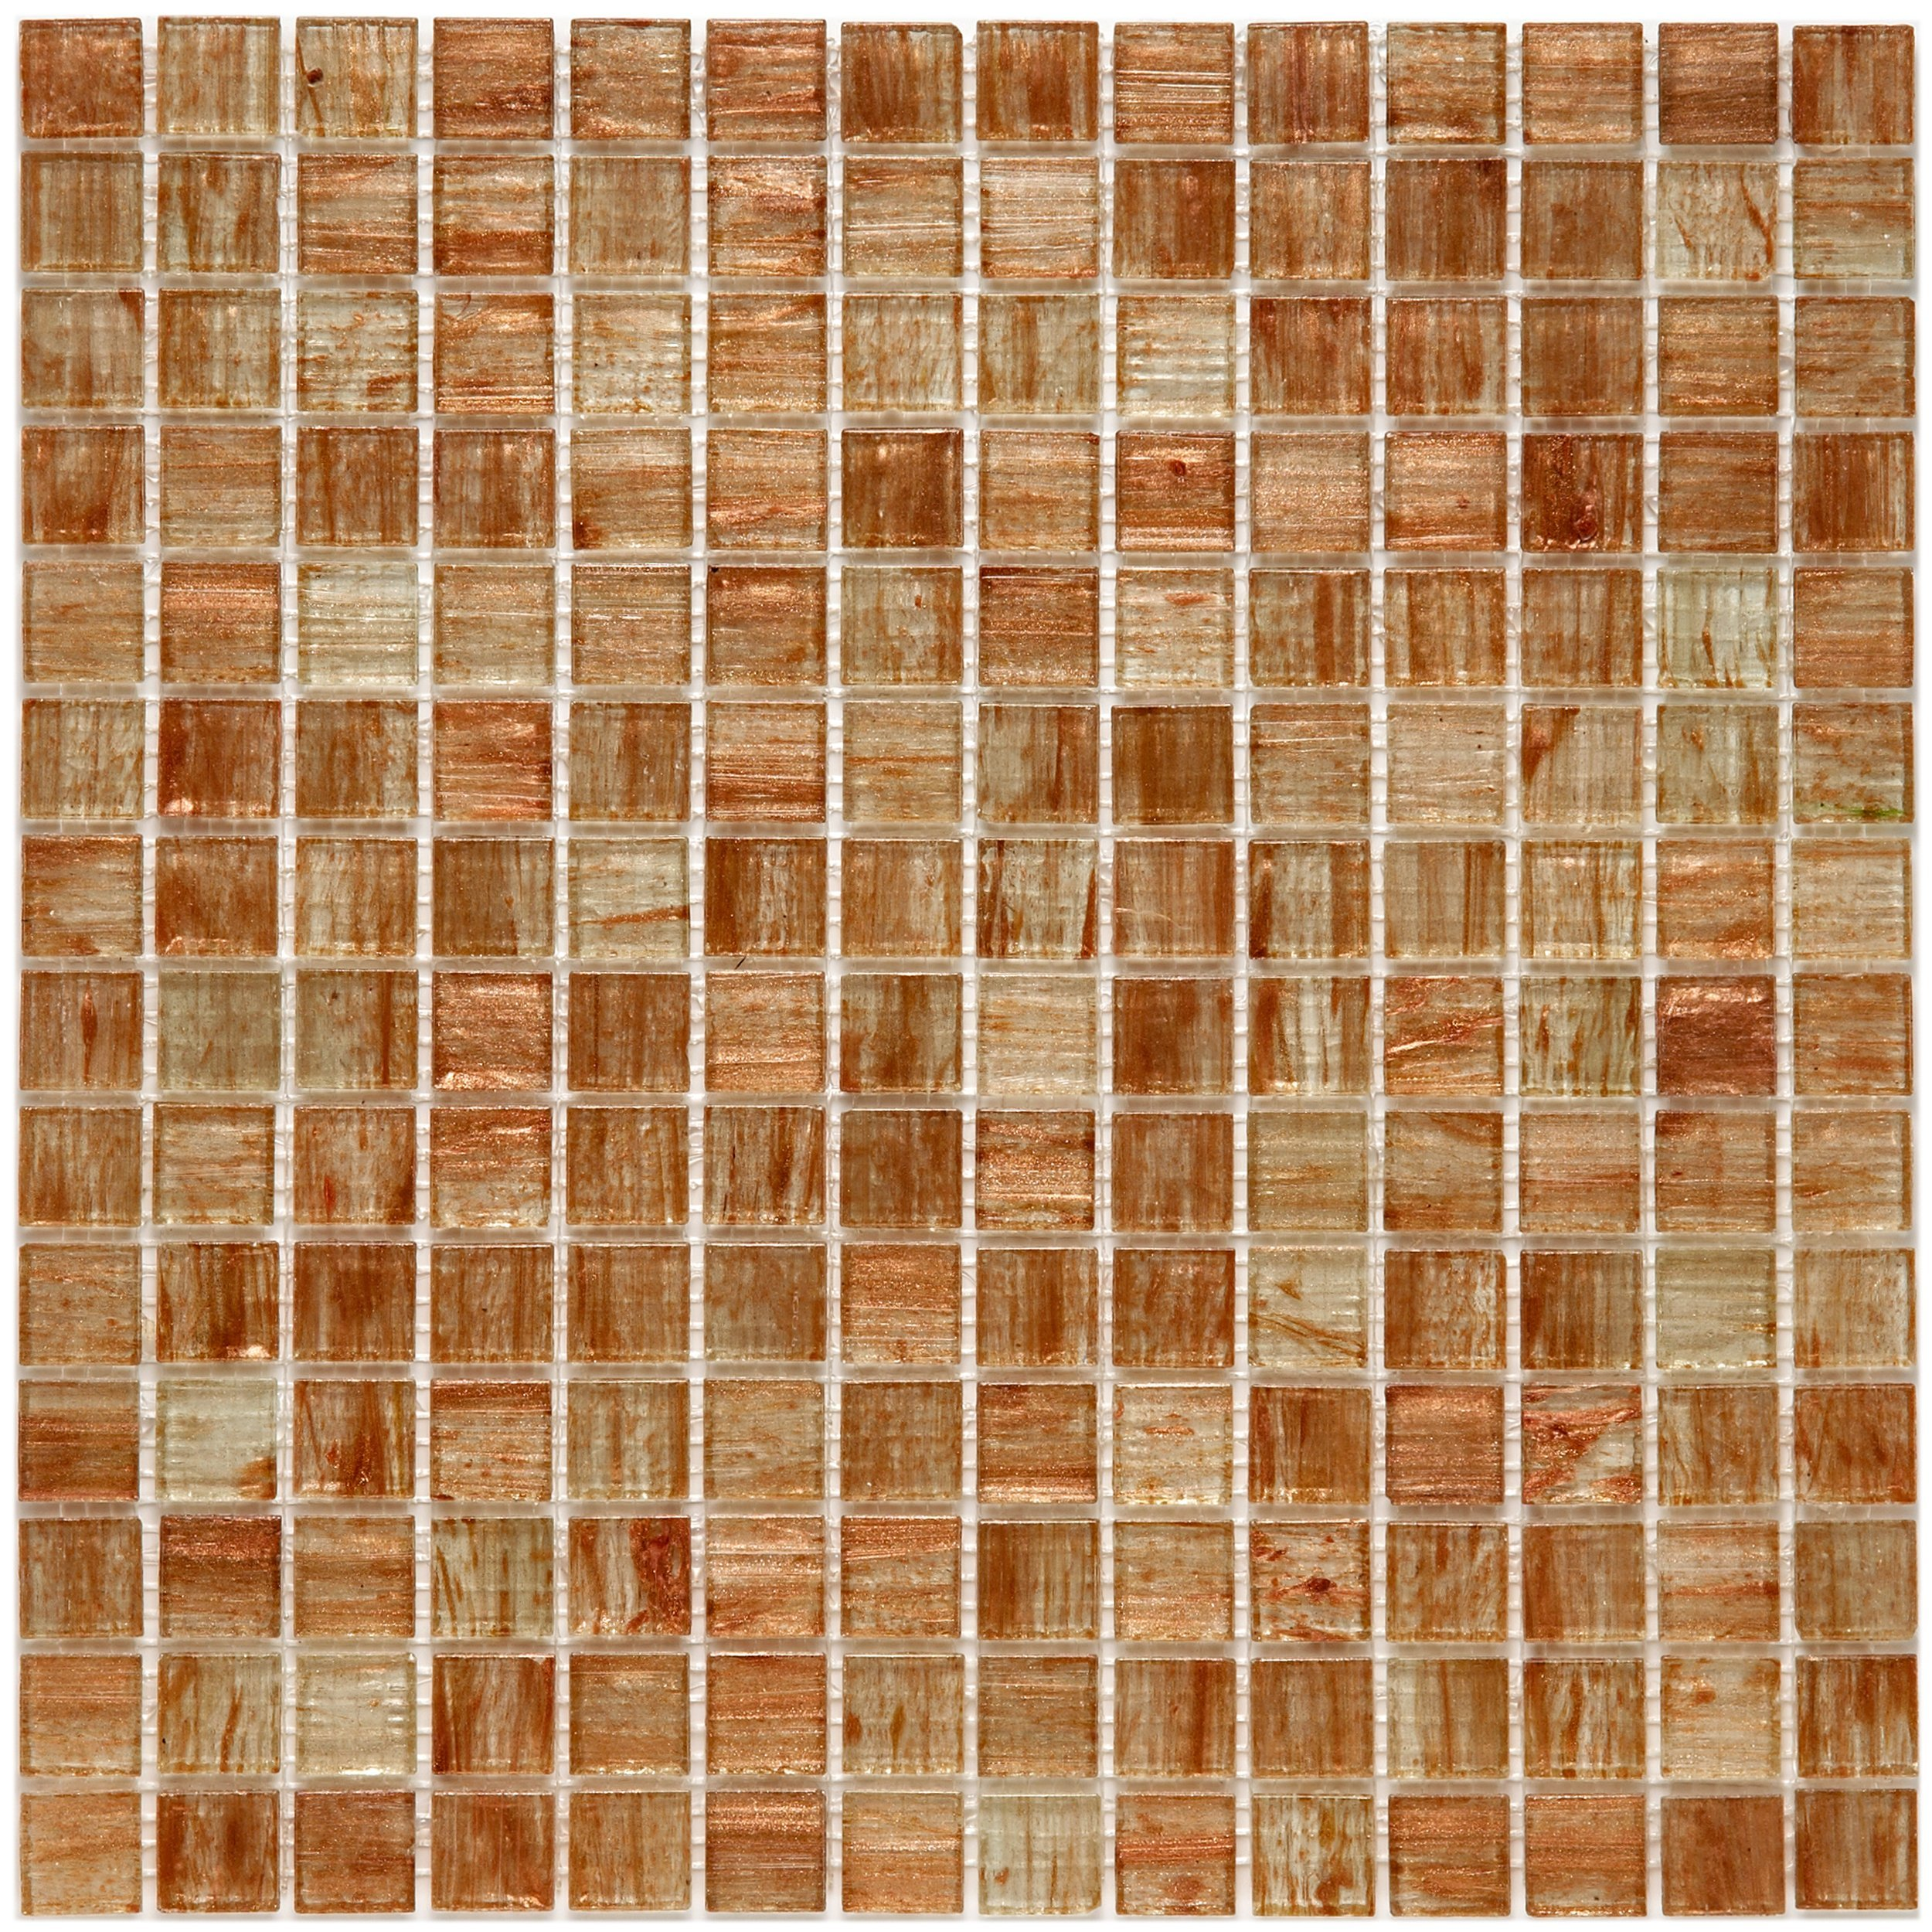 SomerTile GDRCOTAG Fused Glass Mosaic Wall Tile, 12'' x 12'', Brown/Tan/White/Copper/Gold by SOMERTILE